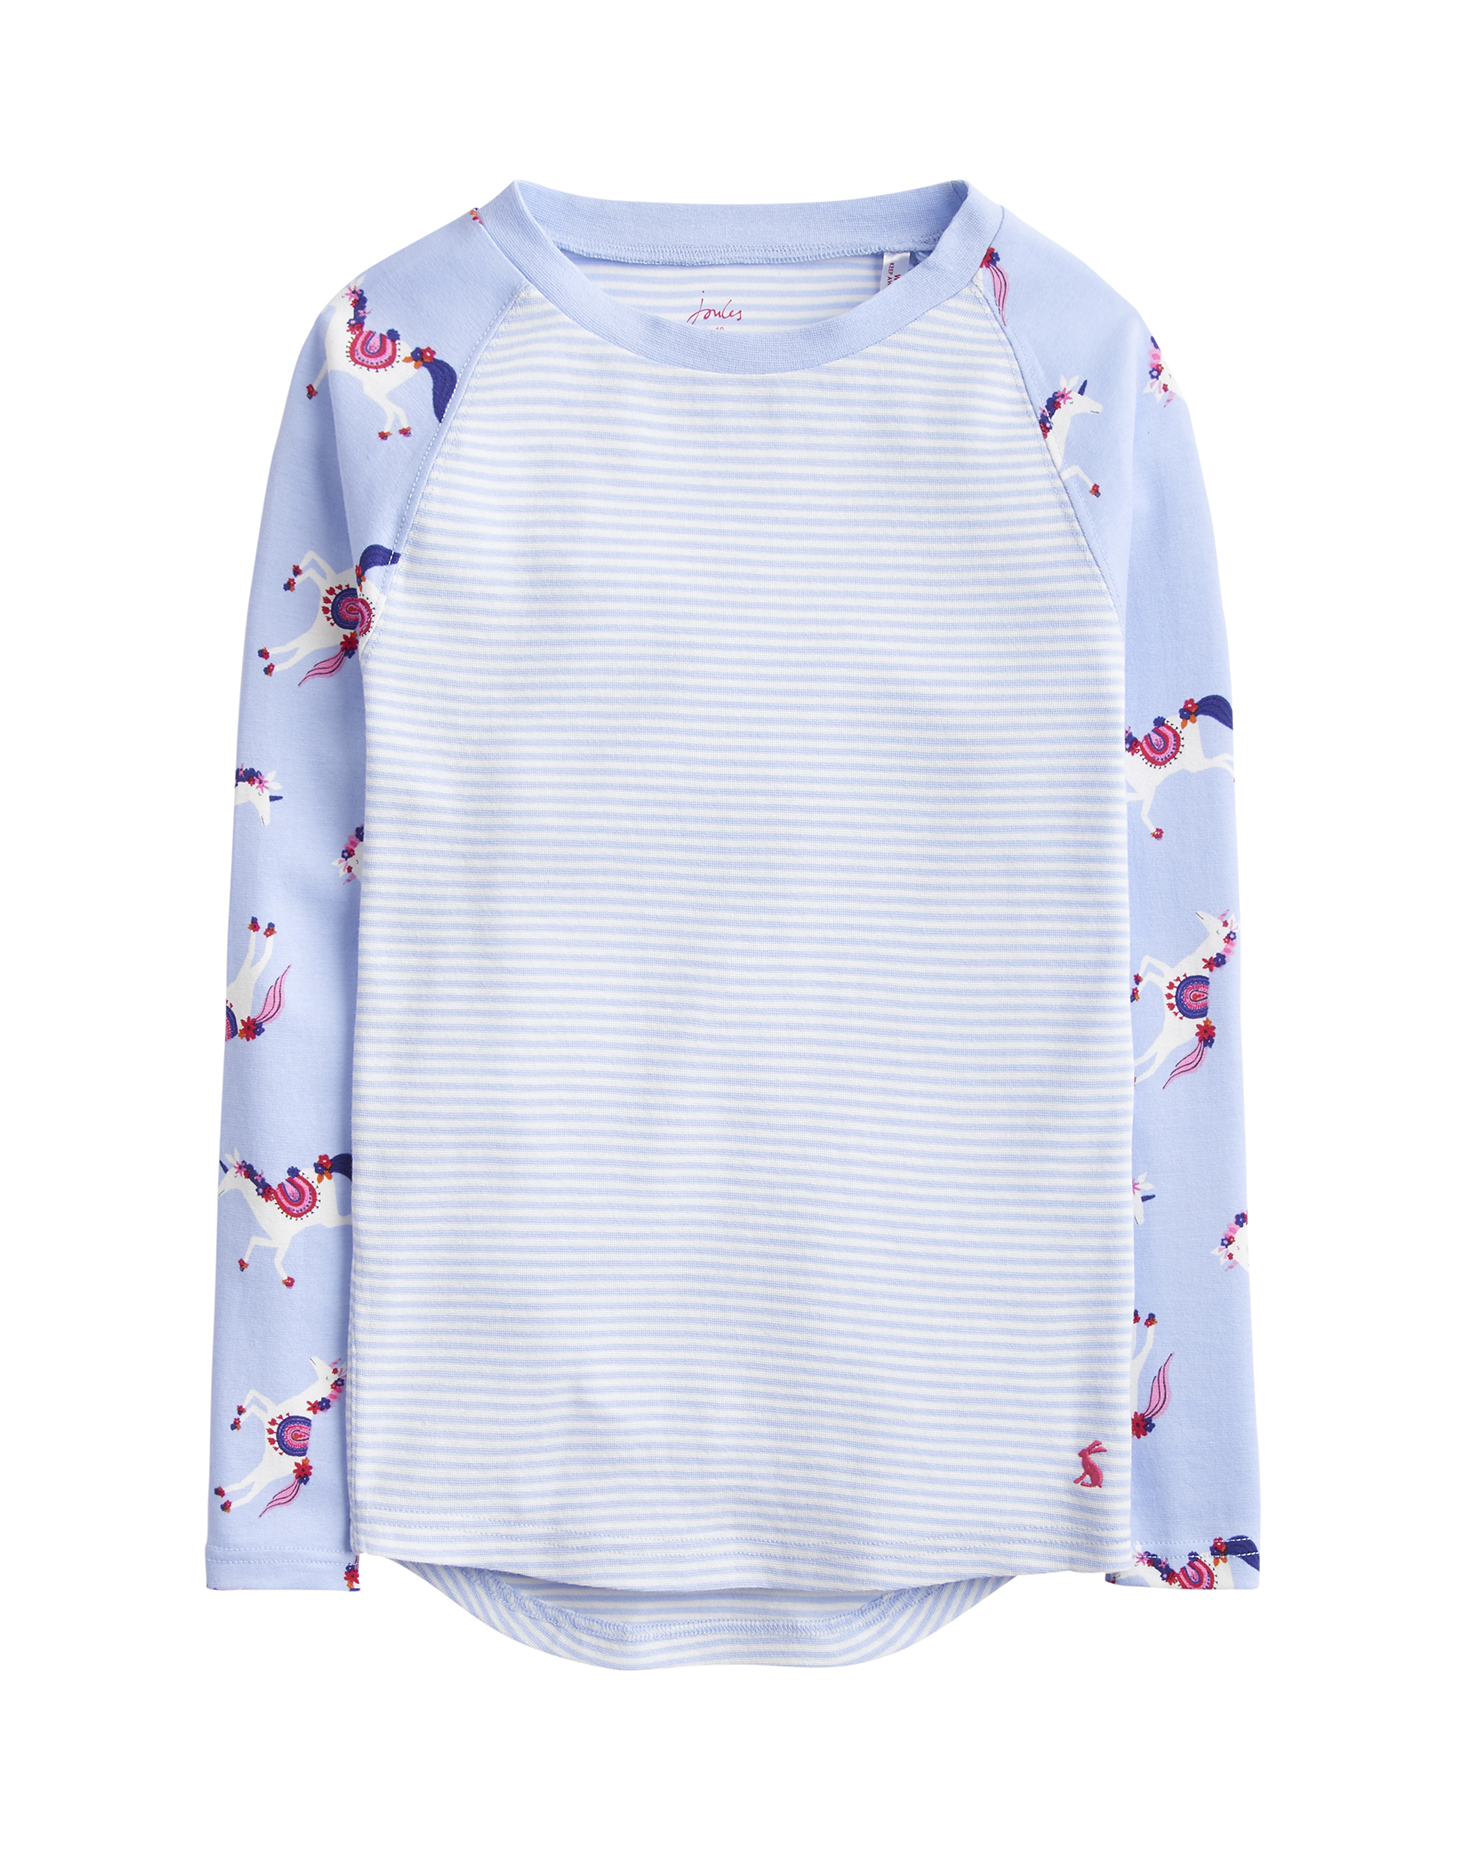 1e657c2736 Joules Junior Sleepwell Jersey Girls Pyjama Set - Sky Blue Unicorn ...